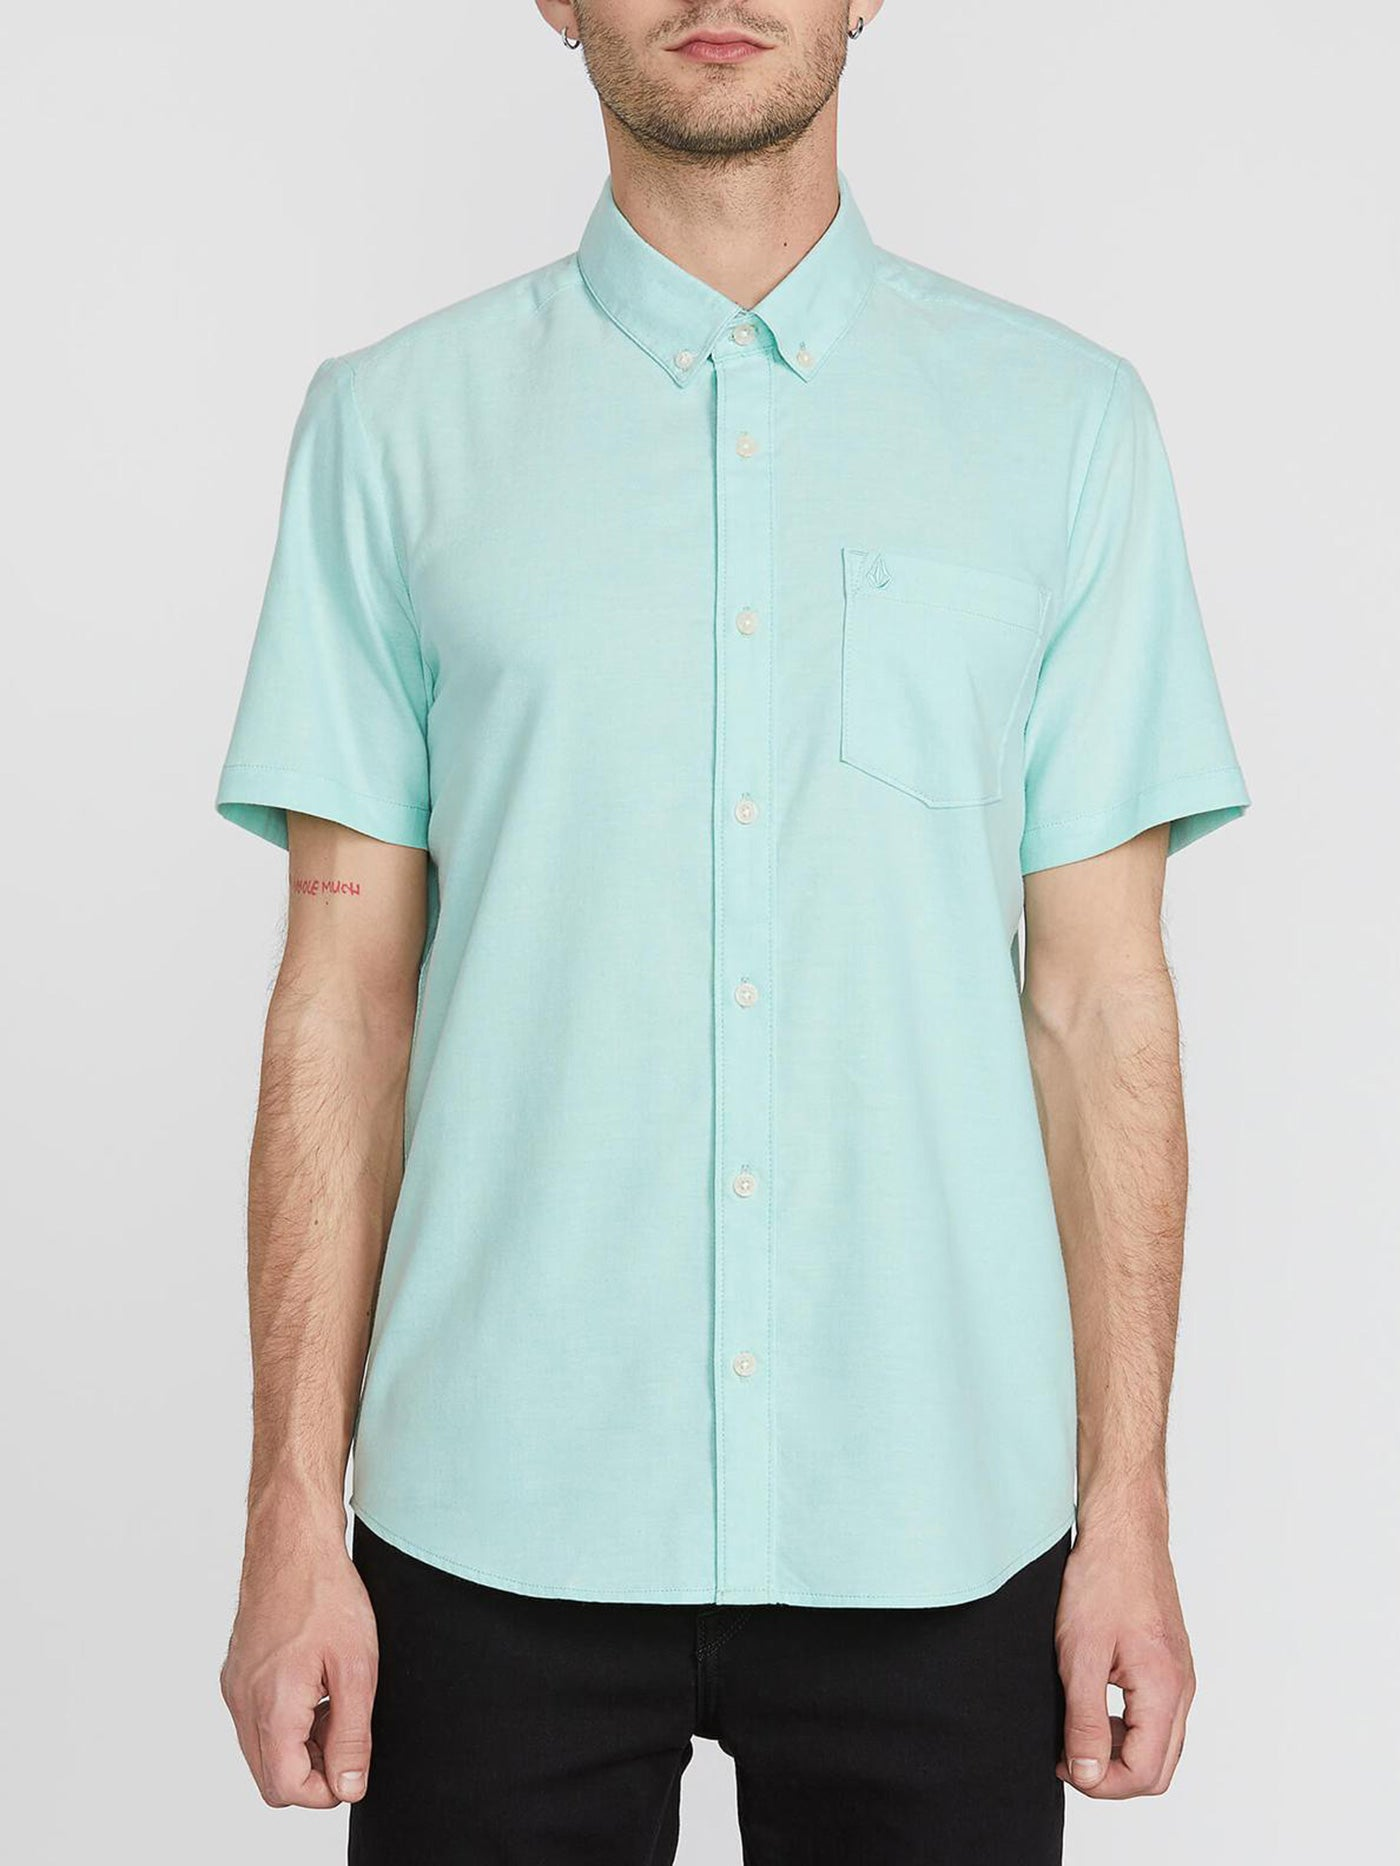 Everett Oxford Short Sleeve Buttondown Shirt